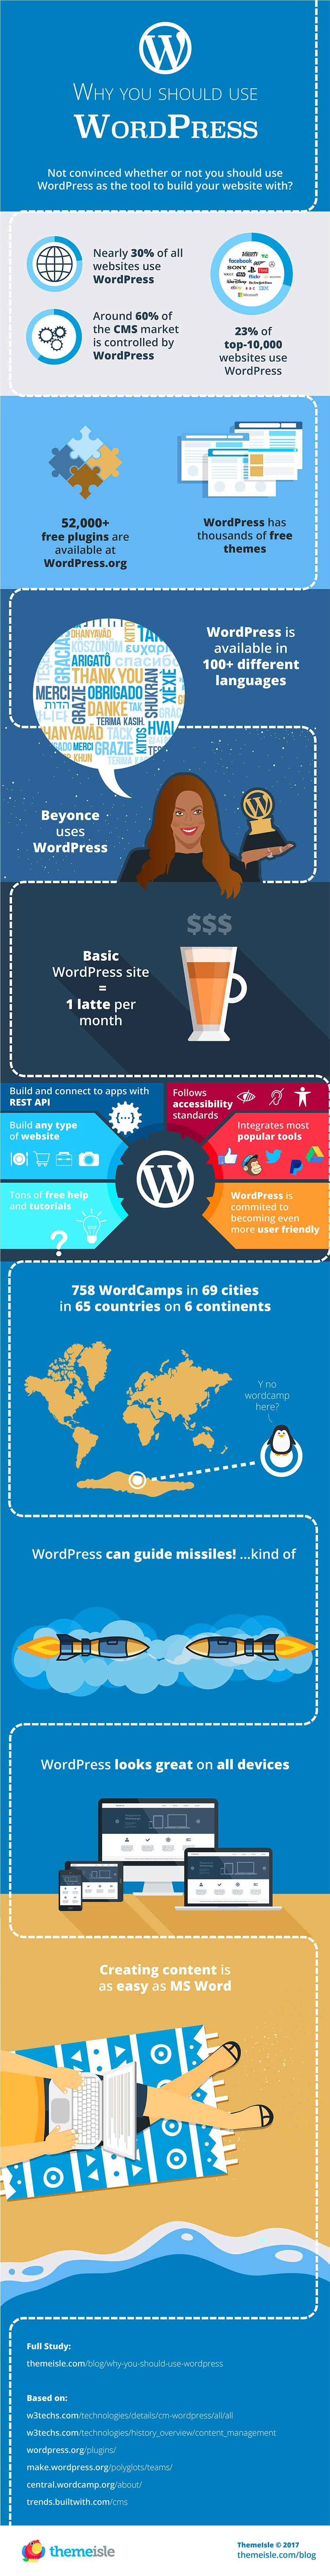 WordPress for Your Business Website